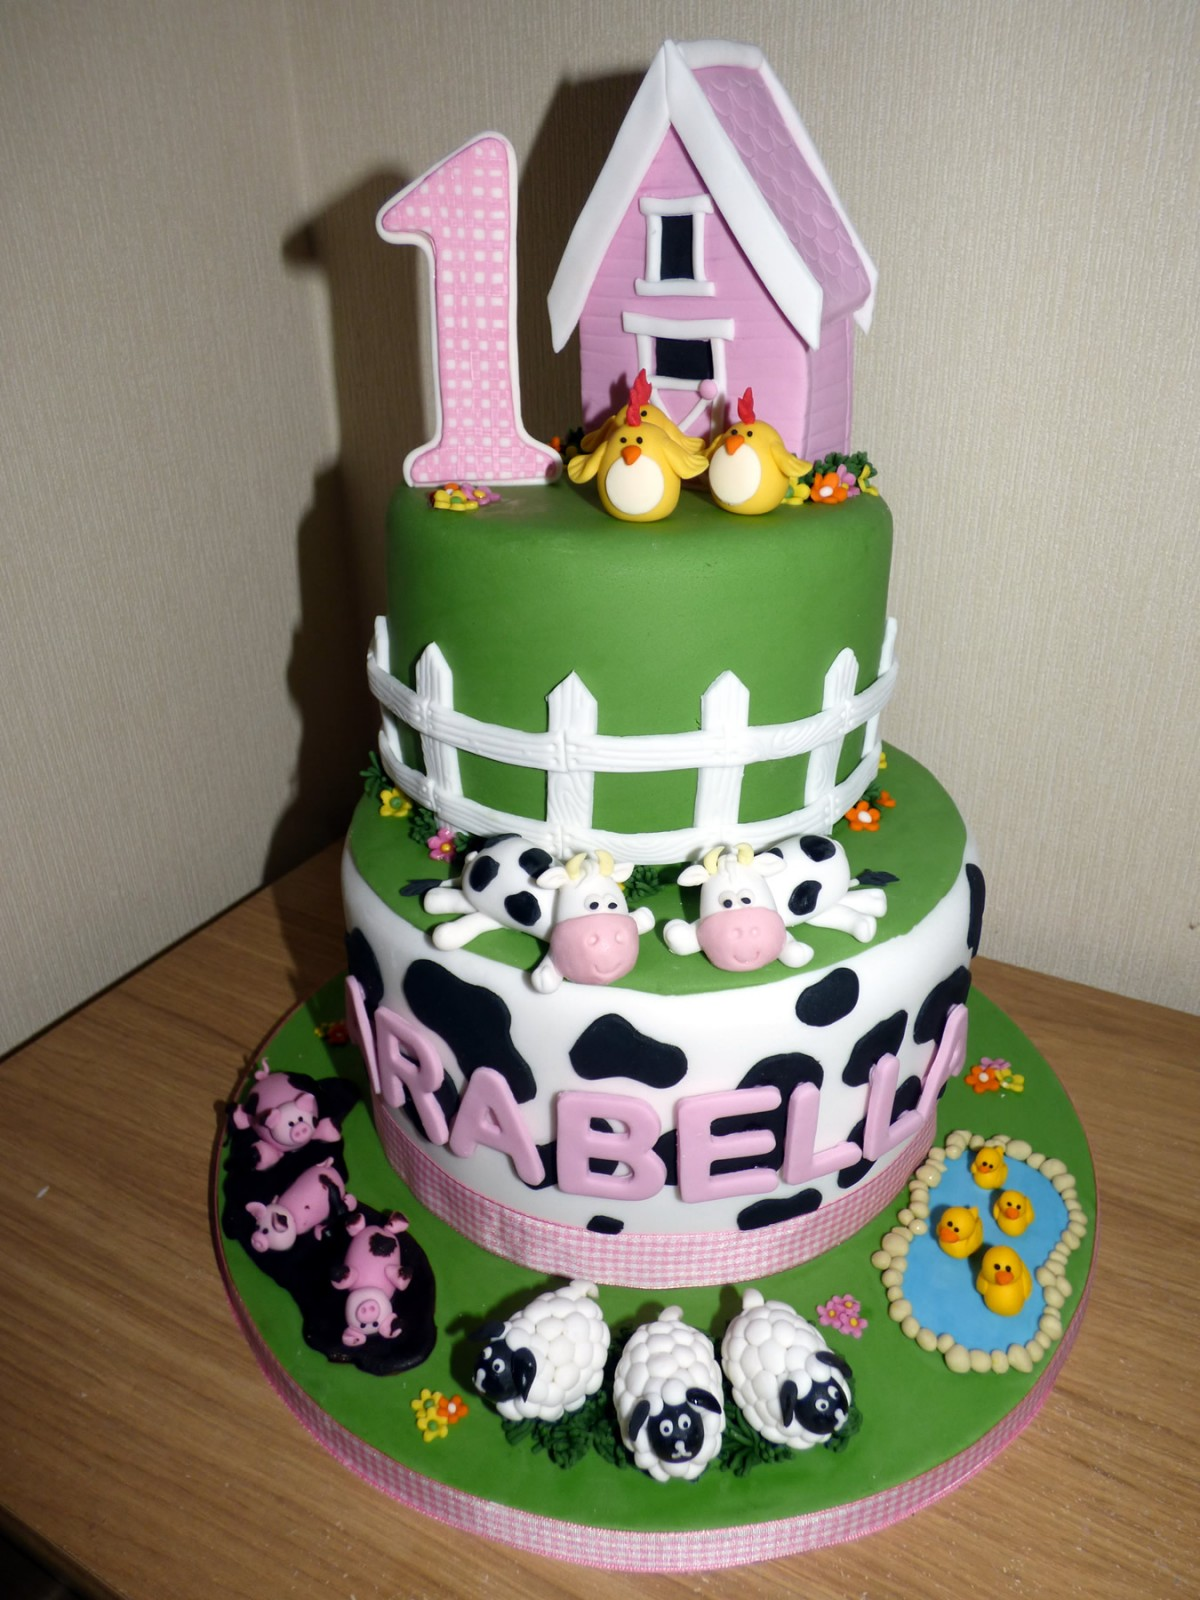 Birthday Cake Images Down : 2 Tier Down on the Farm Birthday Cake   Susie s Cakes